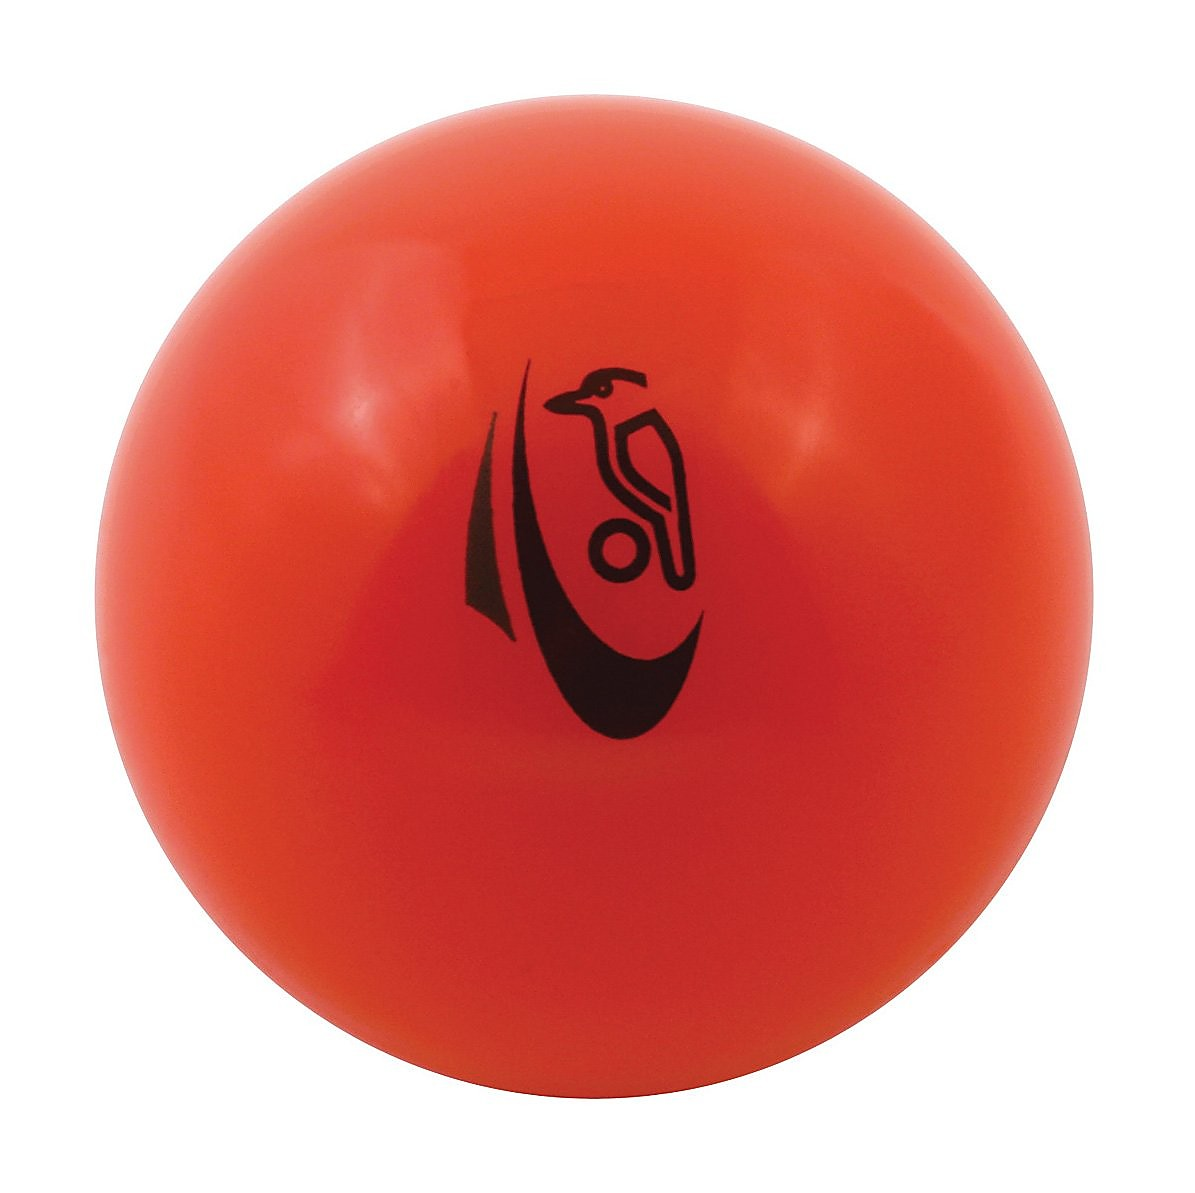 Kookaburra Burra Smooth Hockey Ball